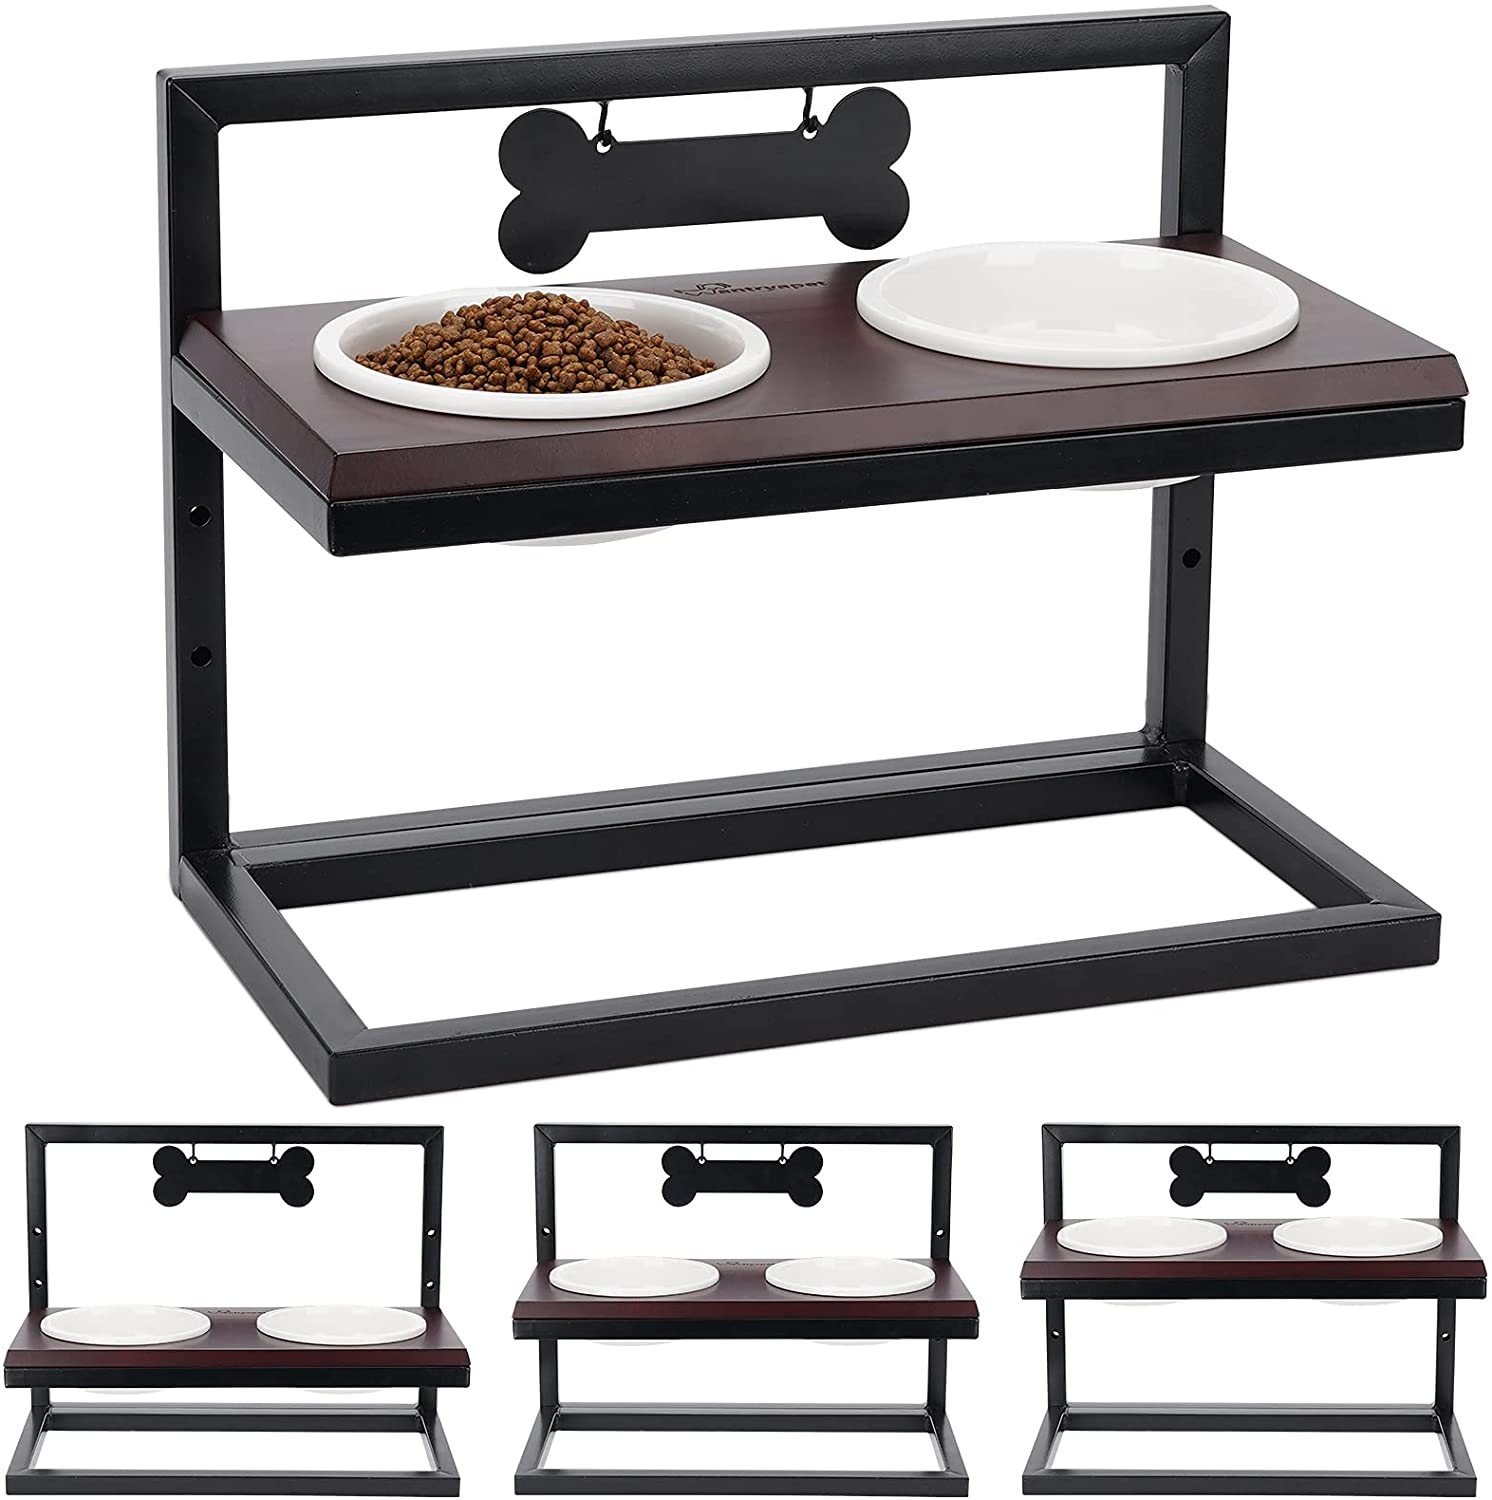 WANTRYAPET Elevated Dog Bowls Adjustable 3 Heights, Premium Break-Resistant Food Water Bowls, Raise Pet Feeder Stand with Name Tags and Marker, Perfect for Puppies, Cat, Small to Large Dogs, Patented